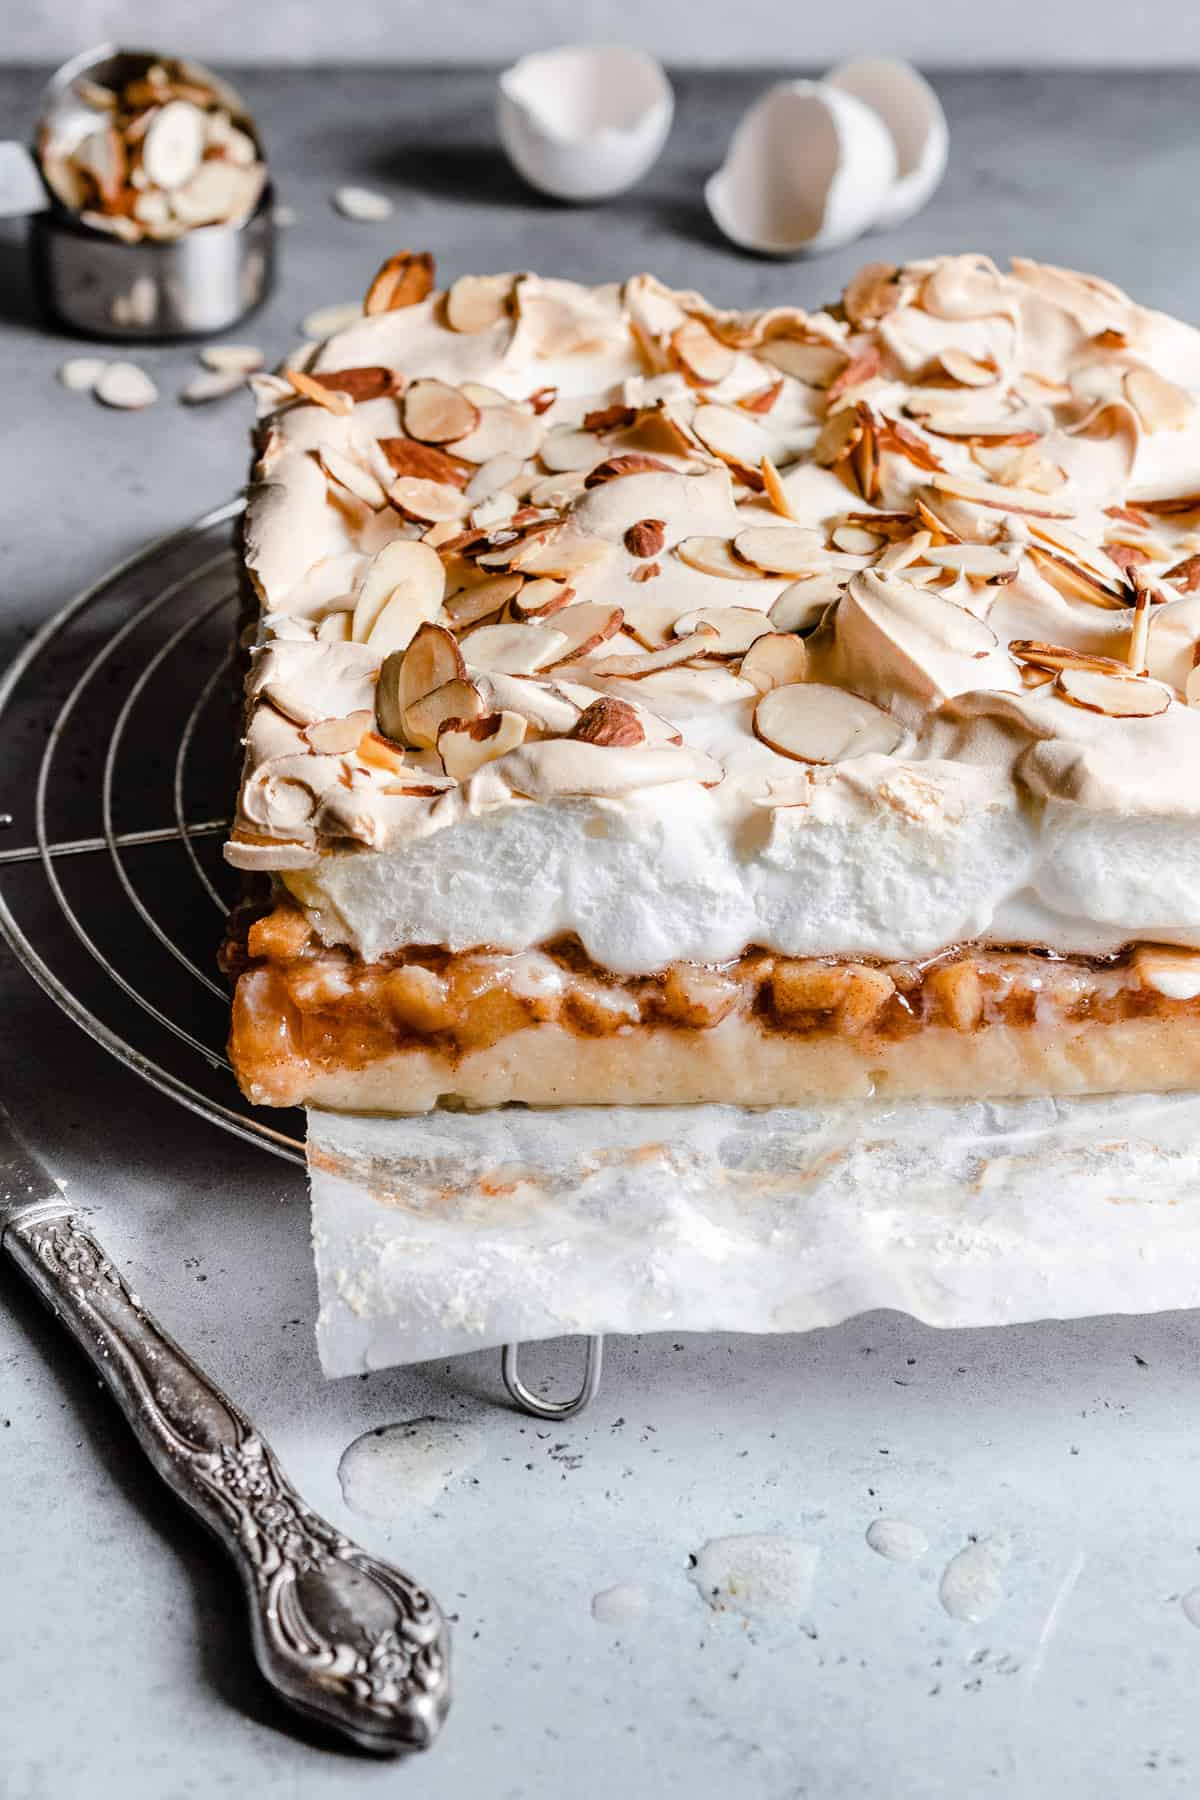 Apple bars topped with meringue.